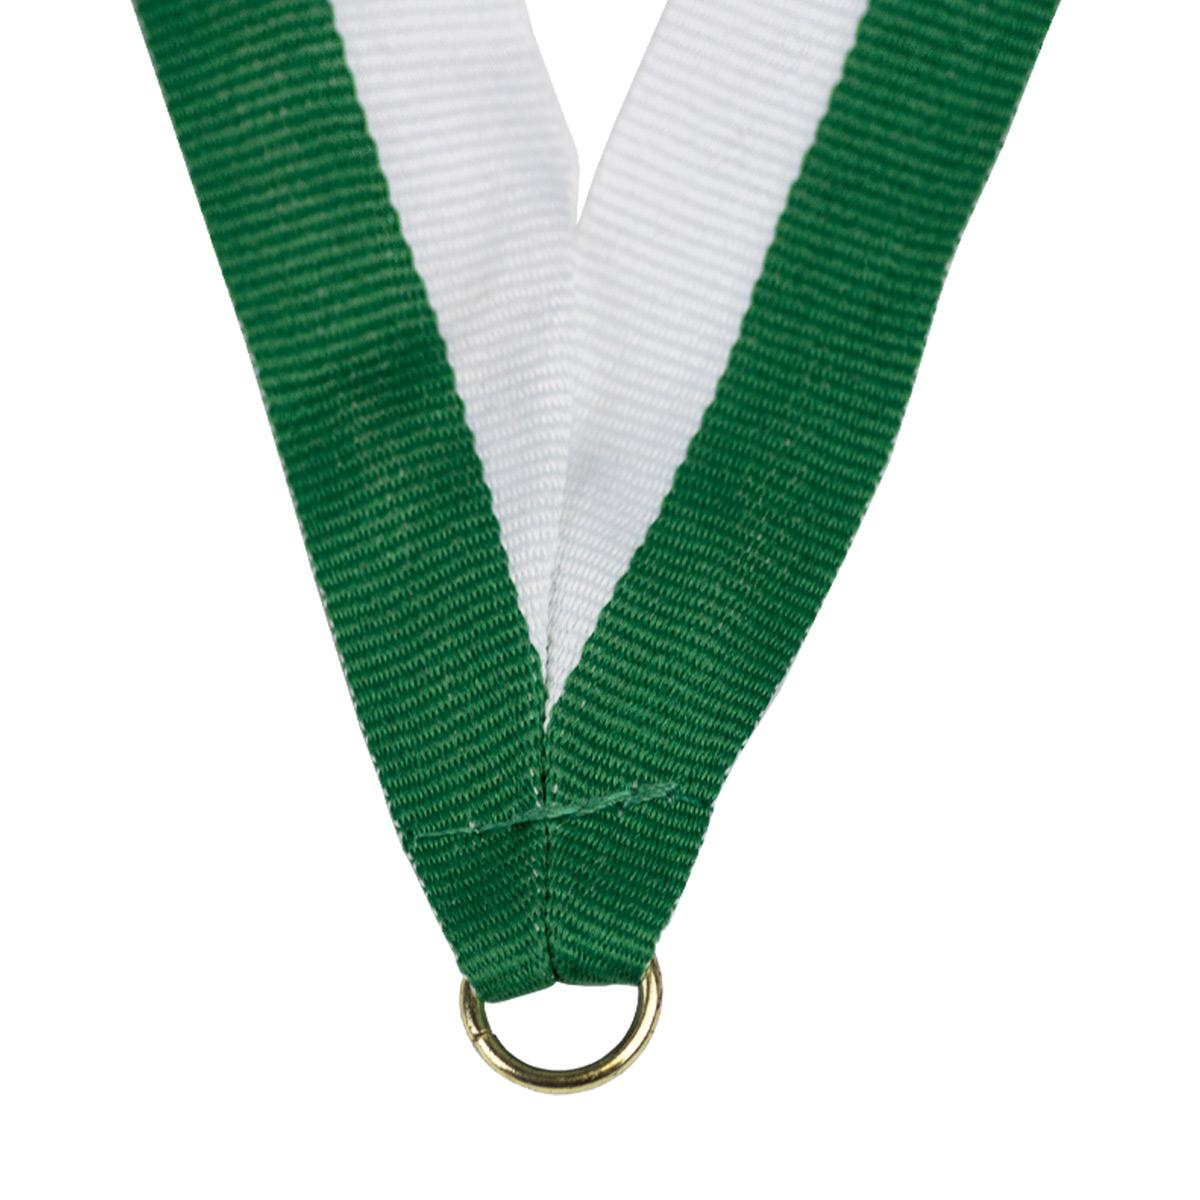 durable neck ribbon in green and white with brass jump ring